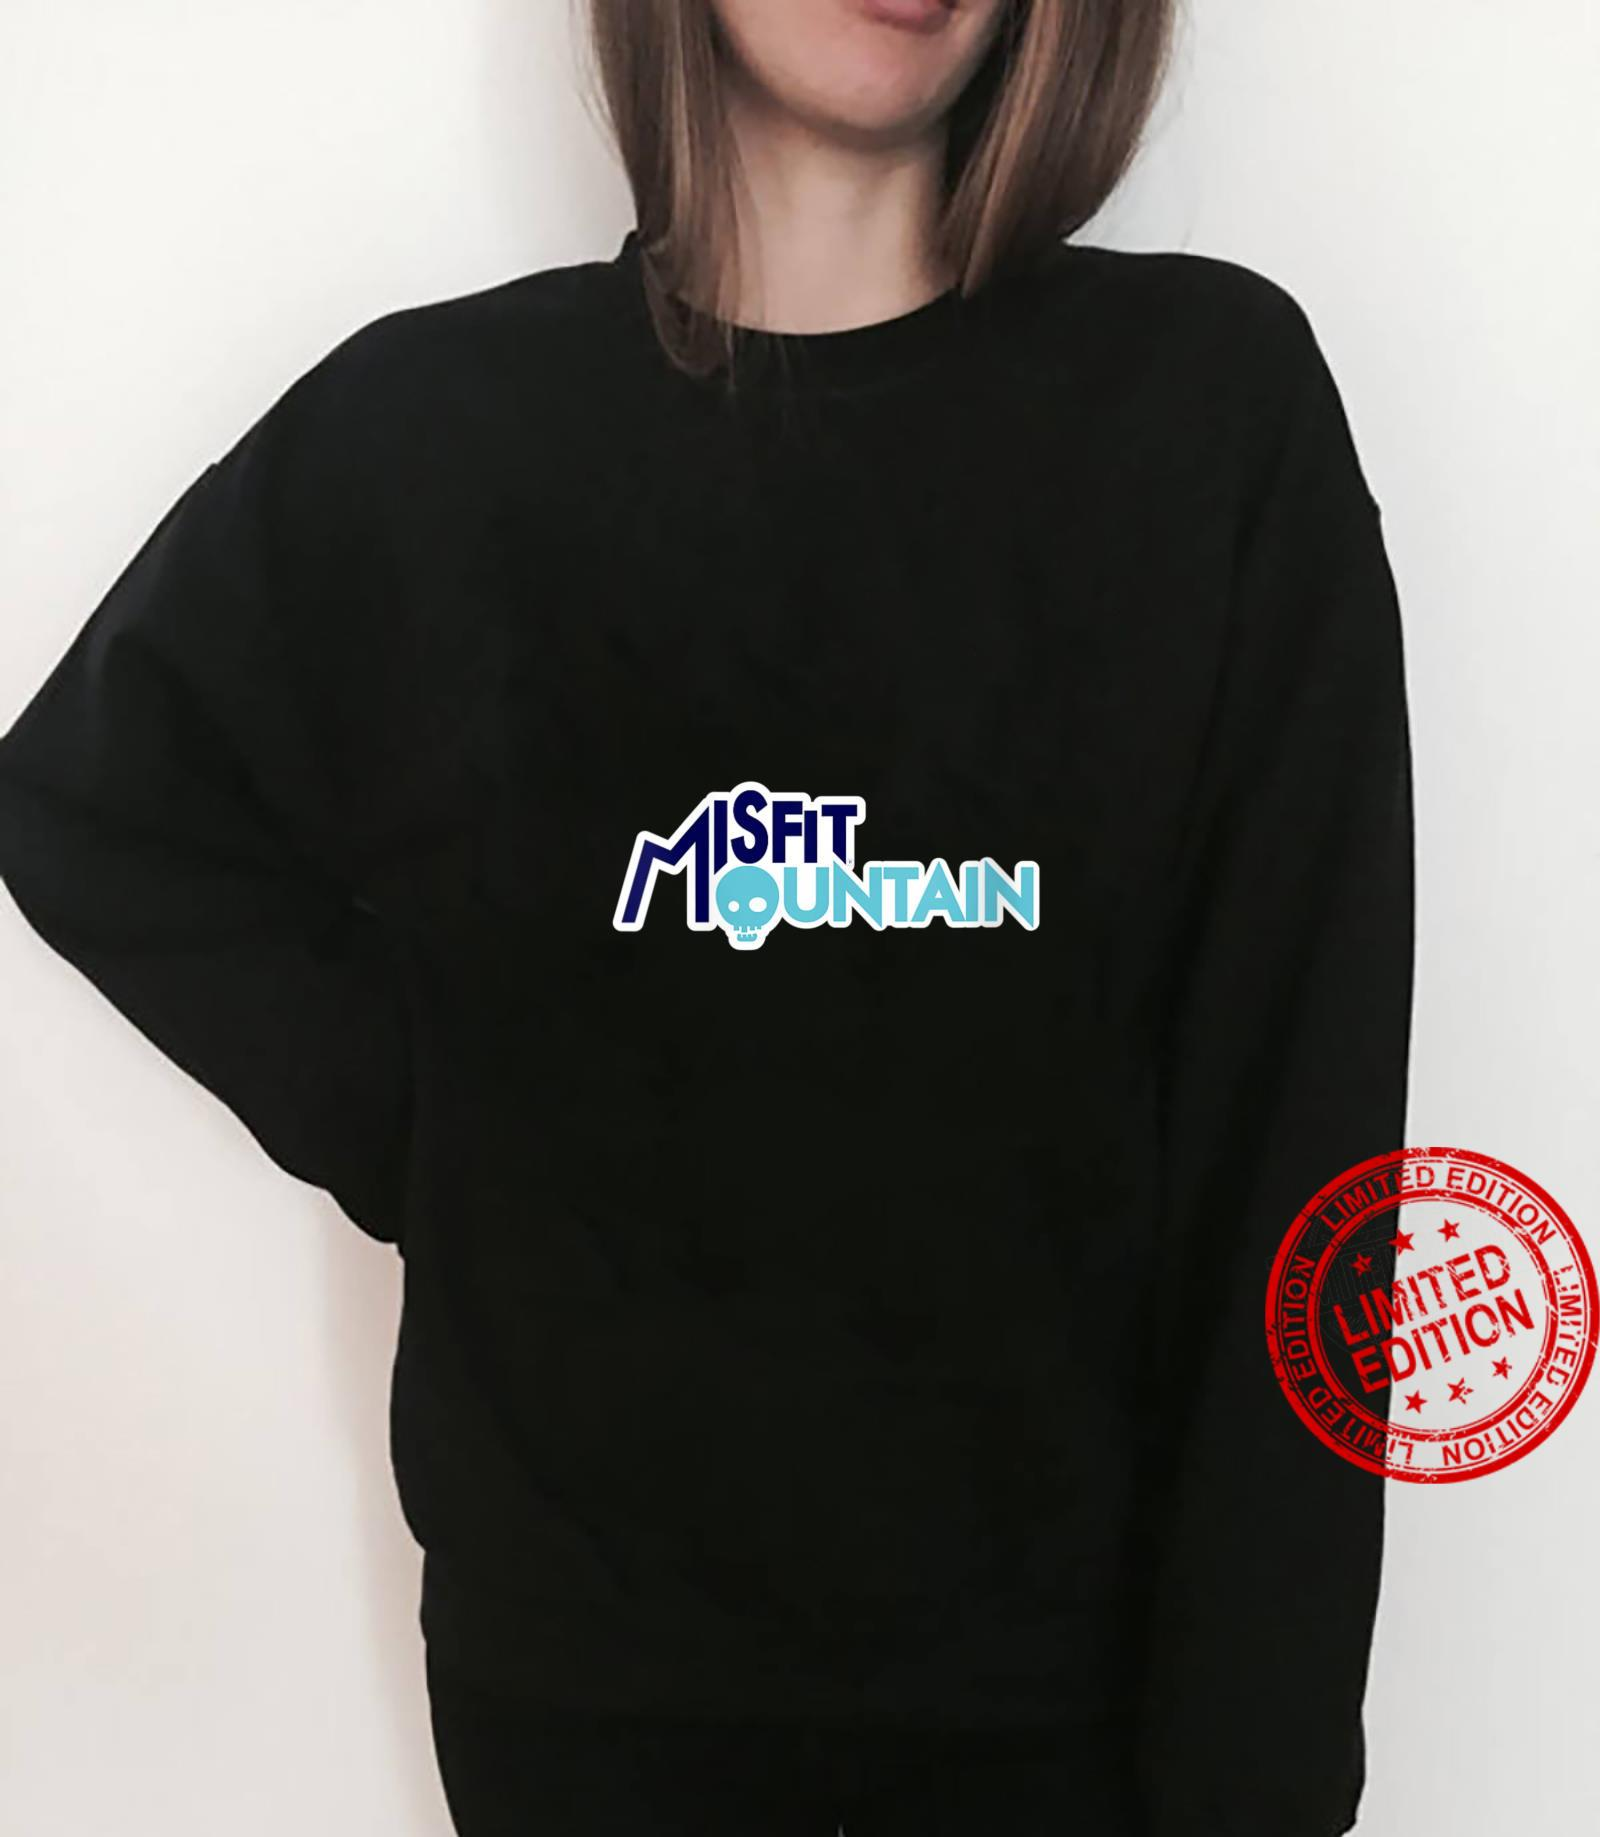 Womens Misfit Mountain Branded Shirt sweater